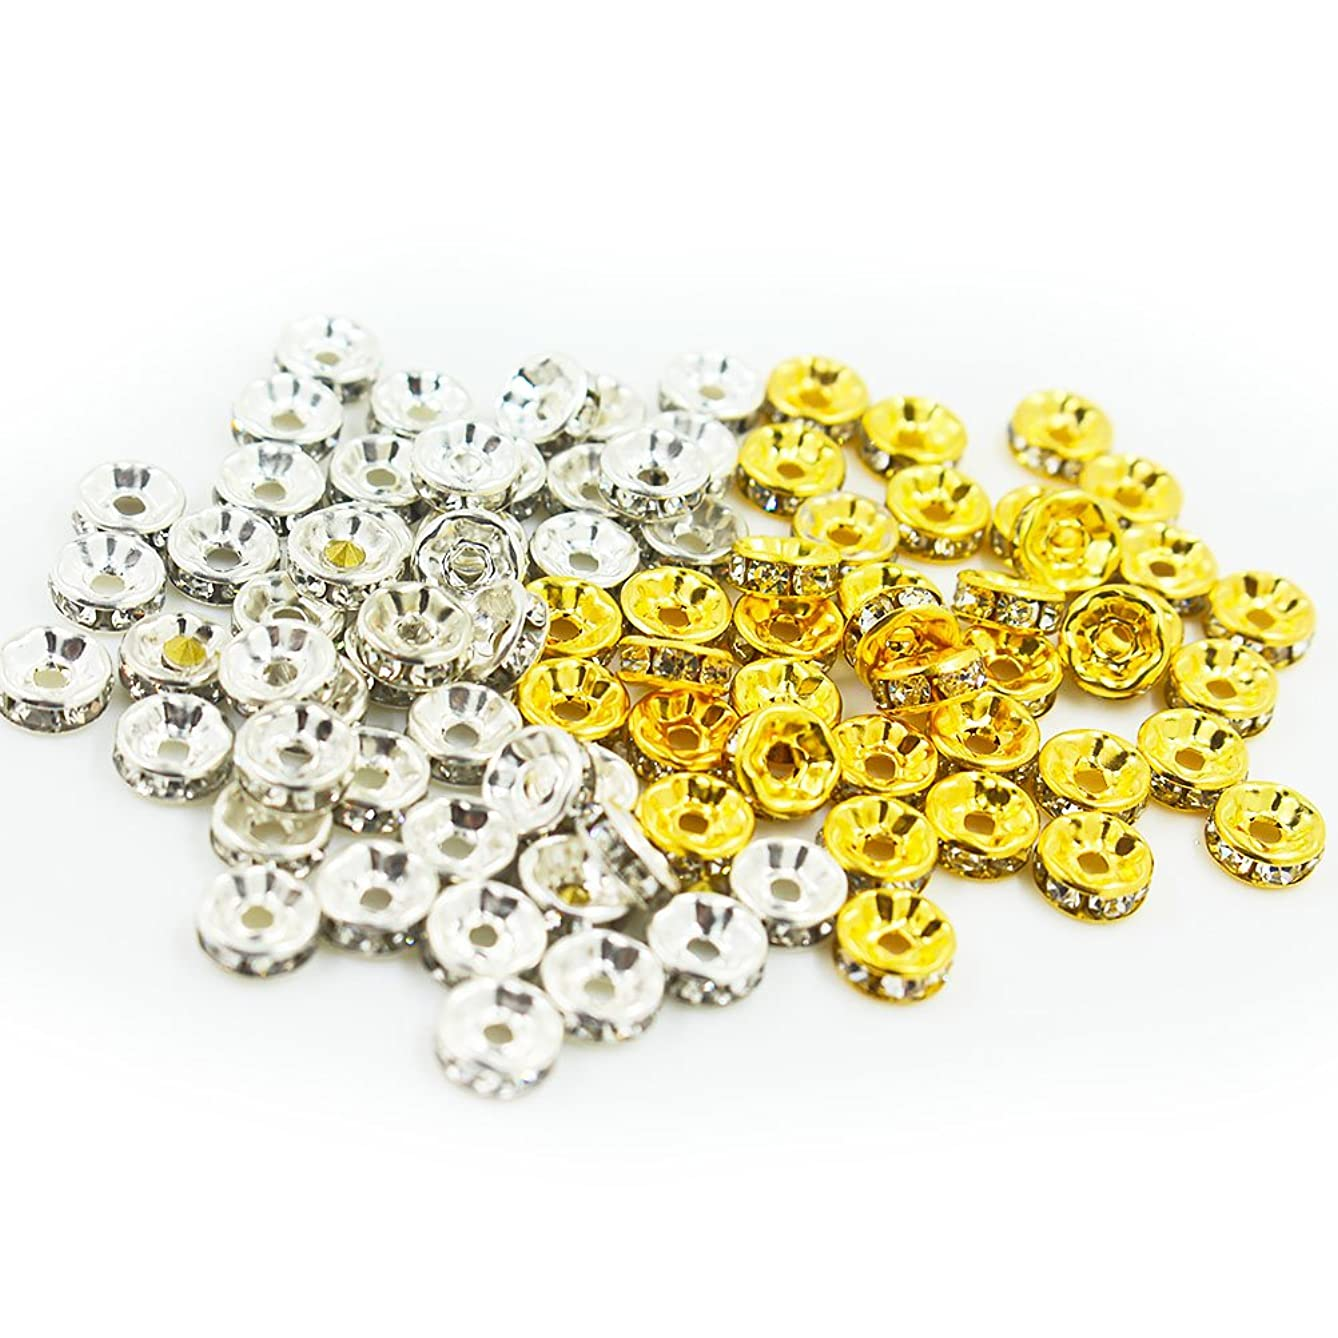 100 PCS 8mm Rondelle Spacer Beads Crystal Beads for Jewelry Making, Silver Plated & Gold Plated